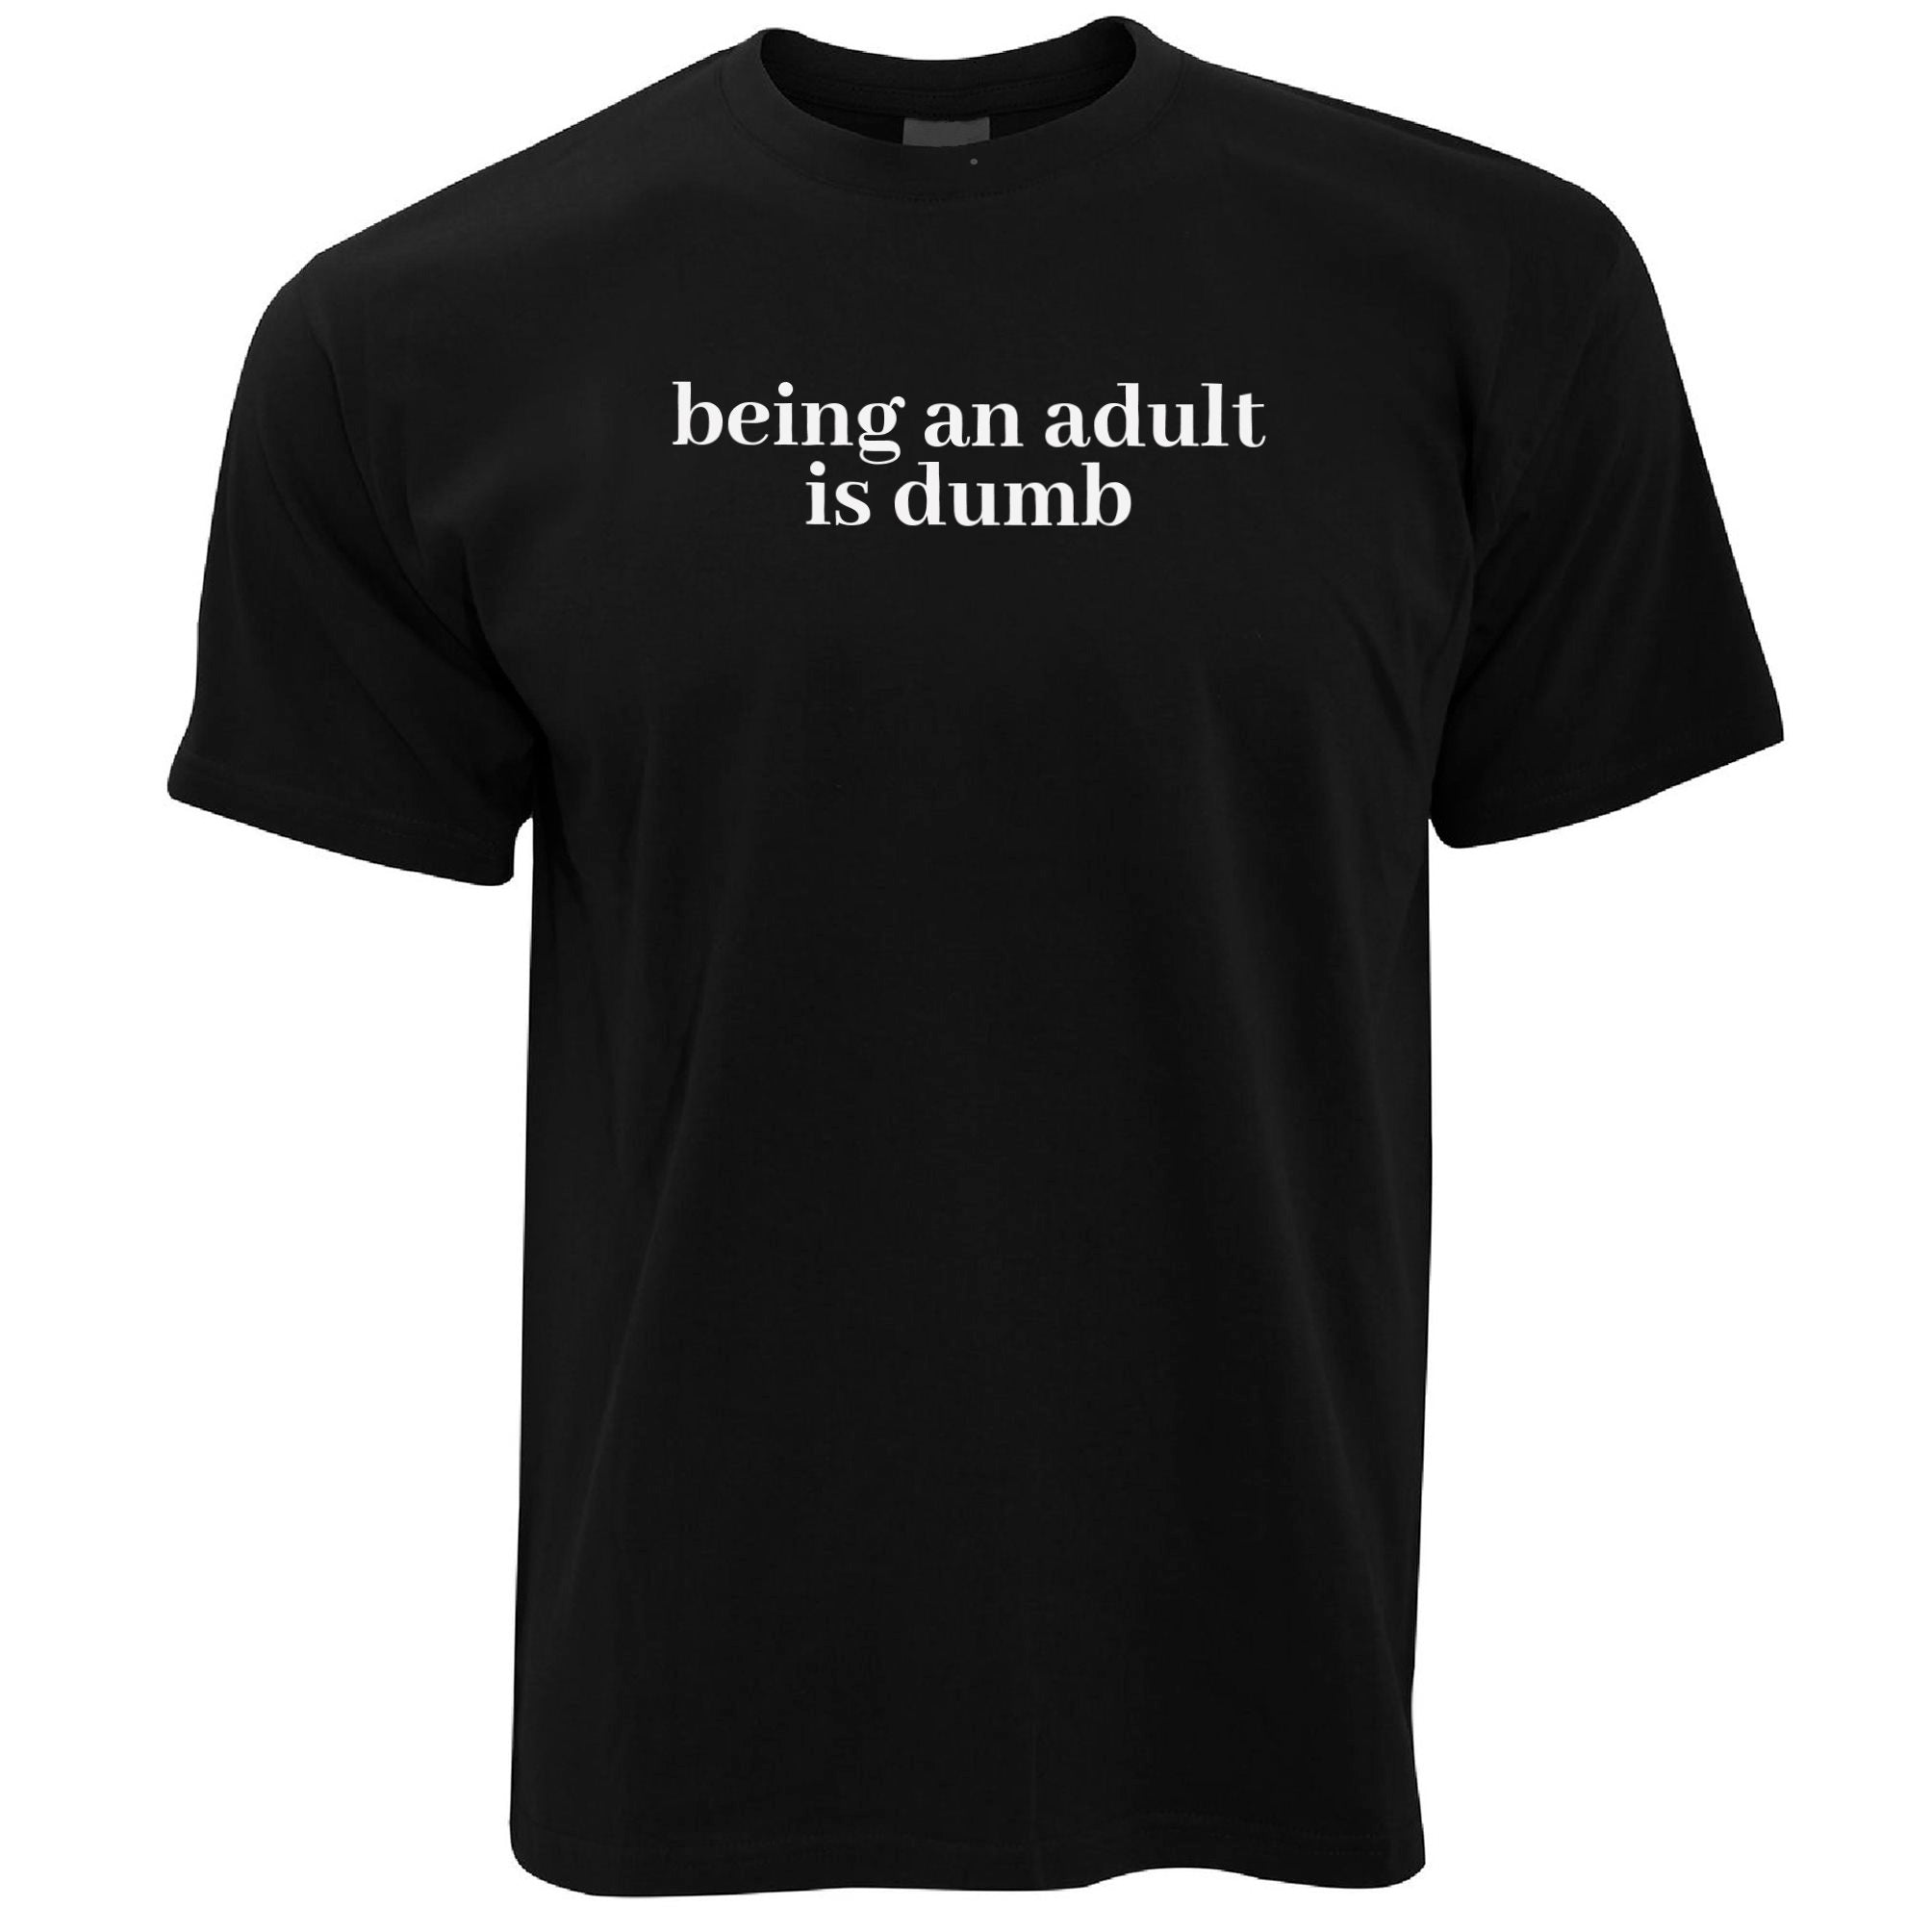 Mens Novelty Slogan T Shirt Being An Adult Is Dumb Tee